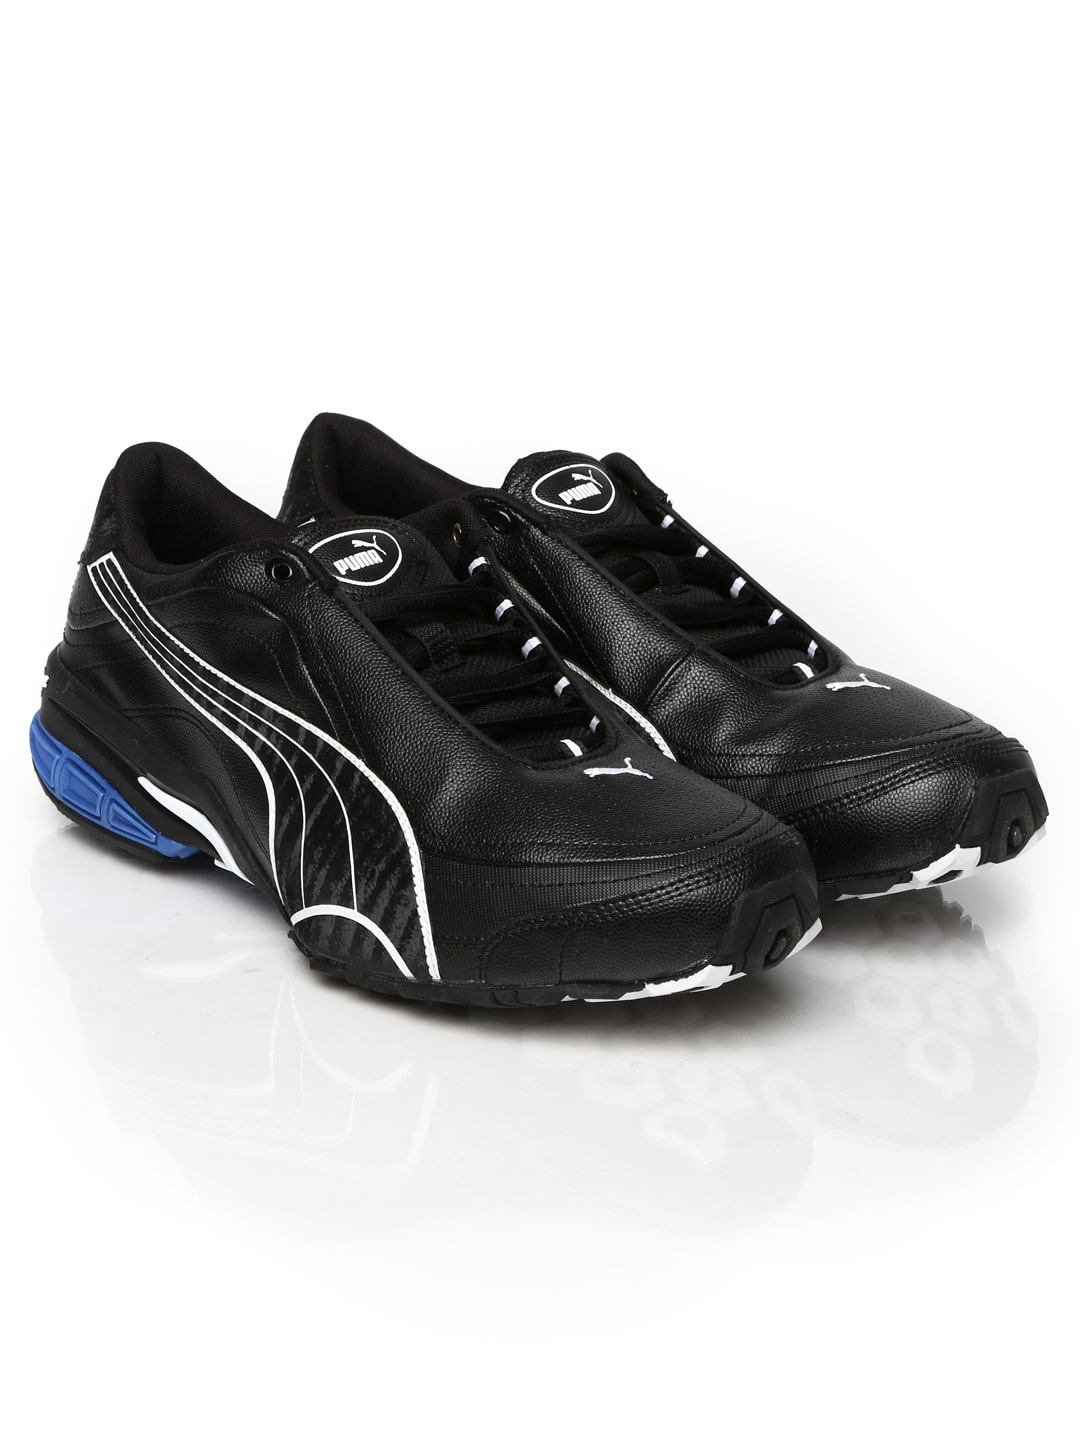 puma shoes with offers